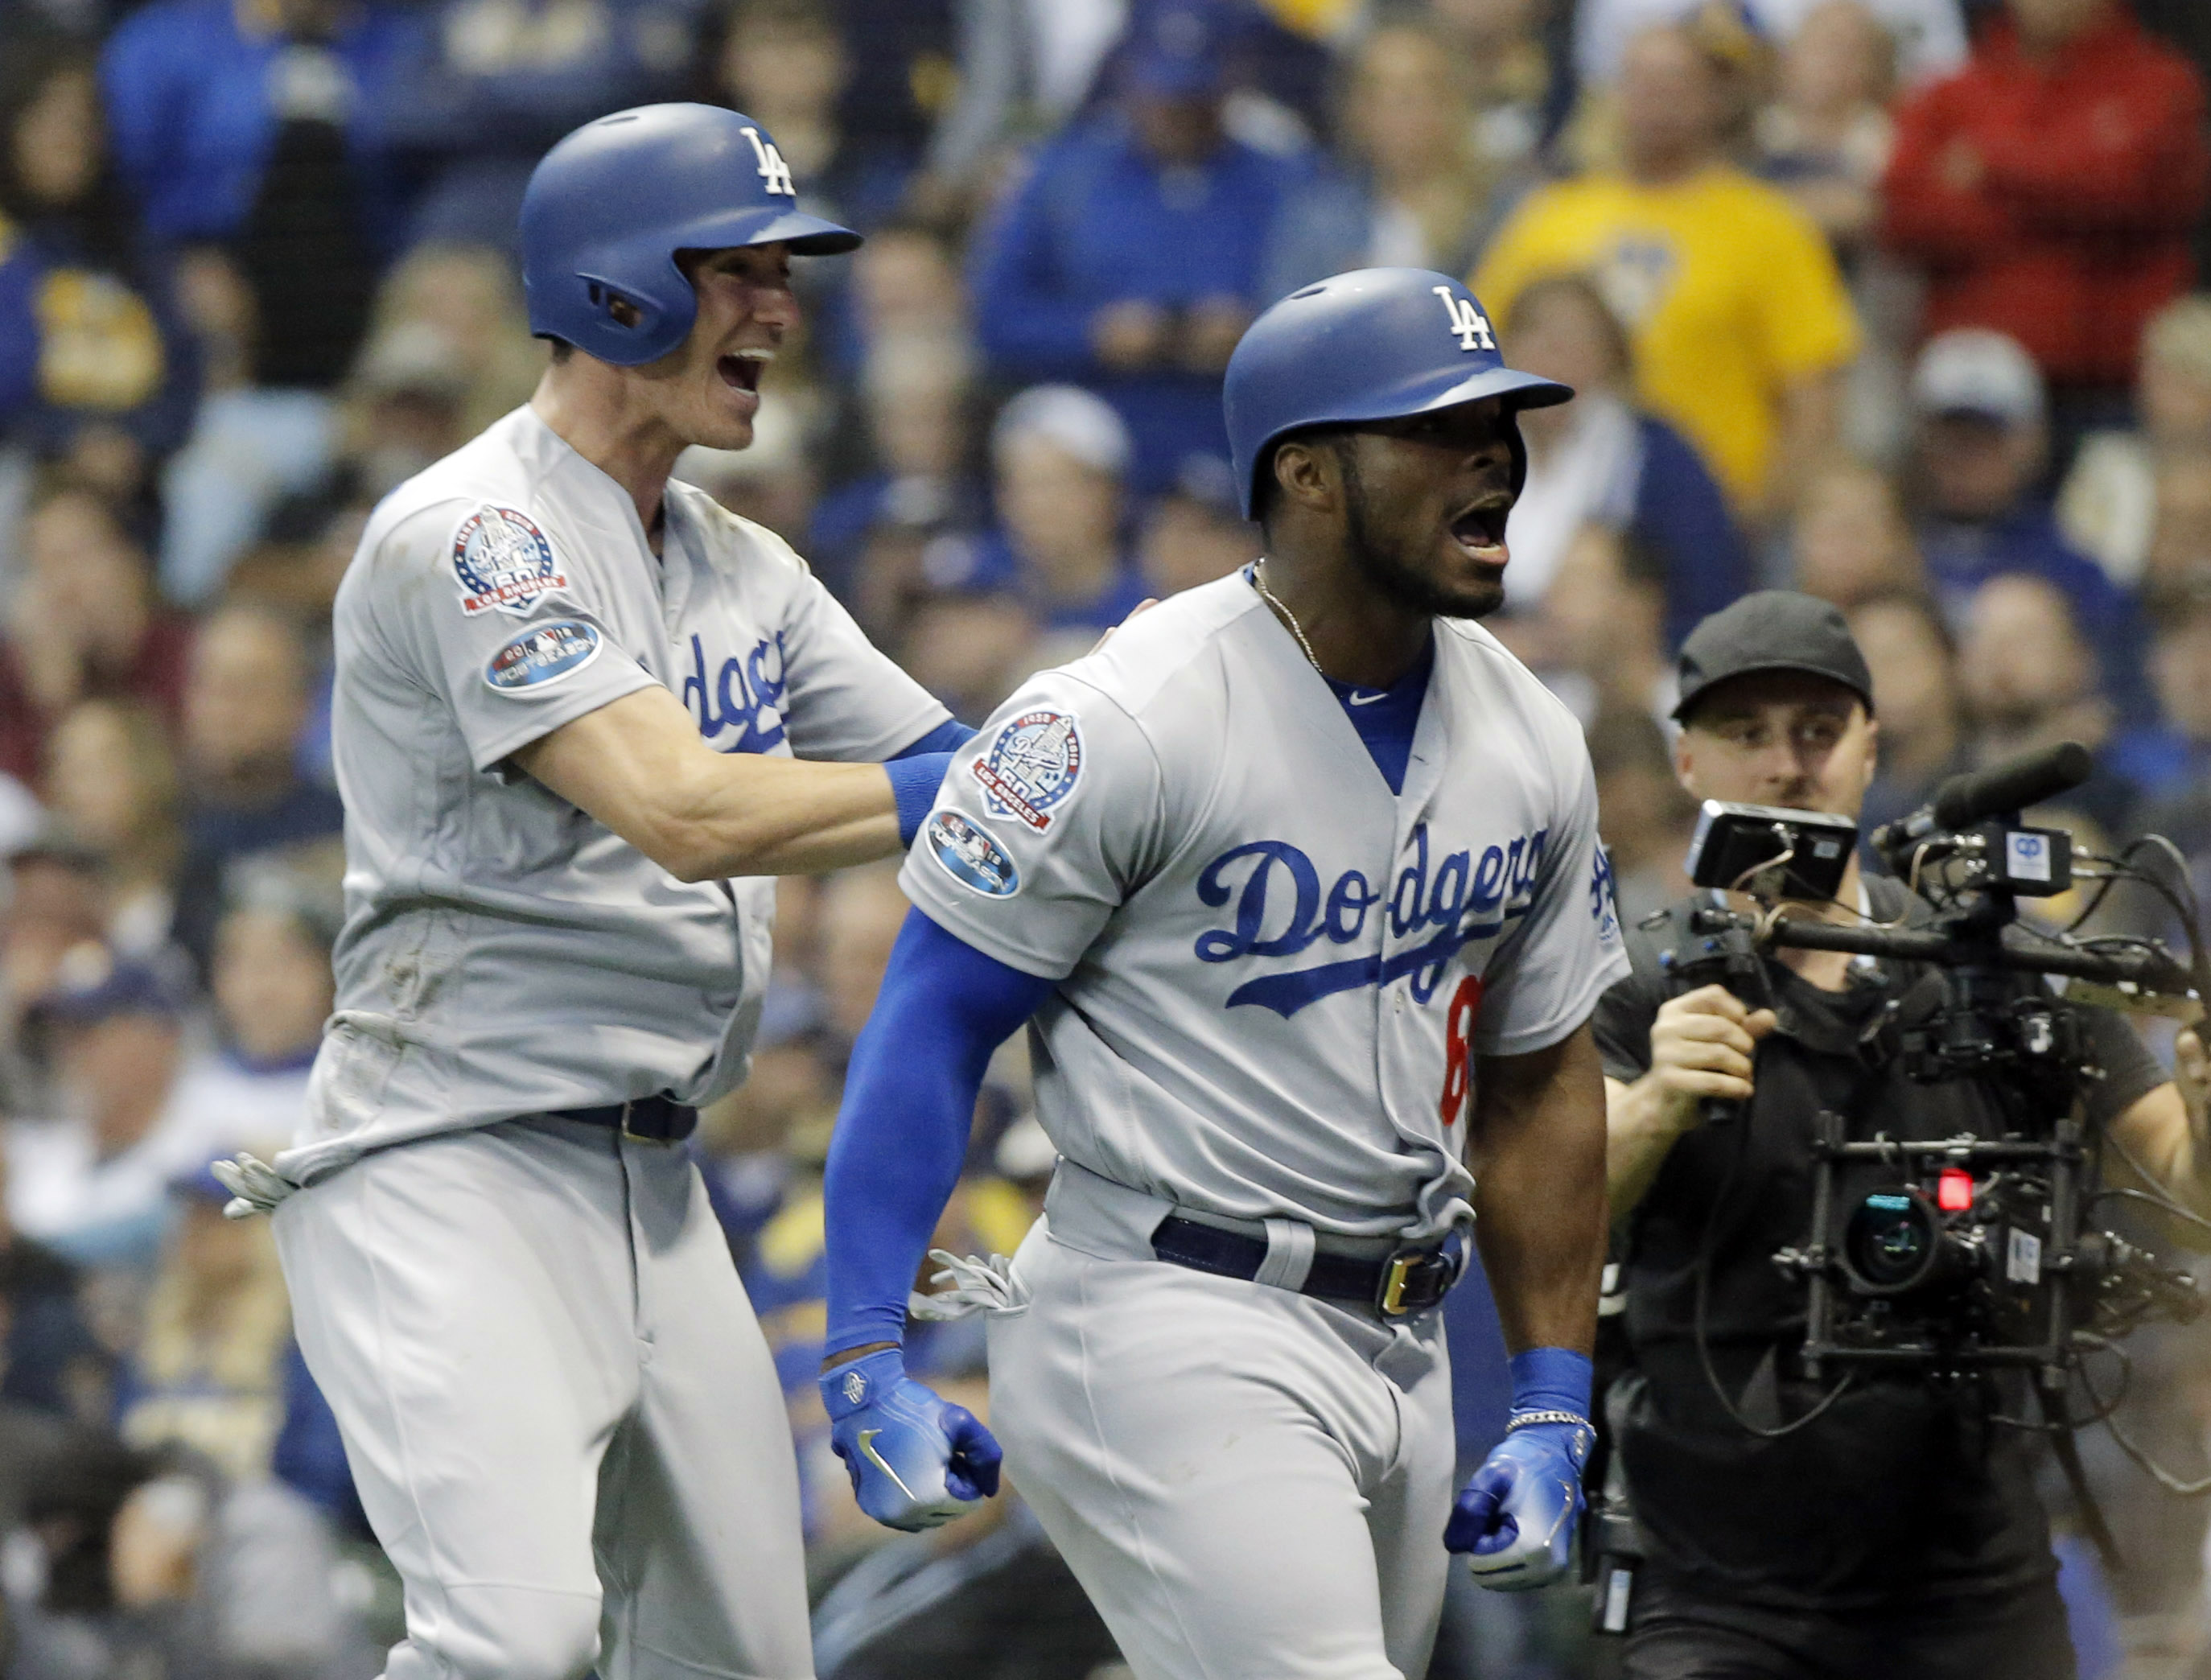 The Dodgers and Red Sox took wildly different paths to the World Series